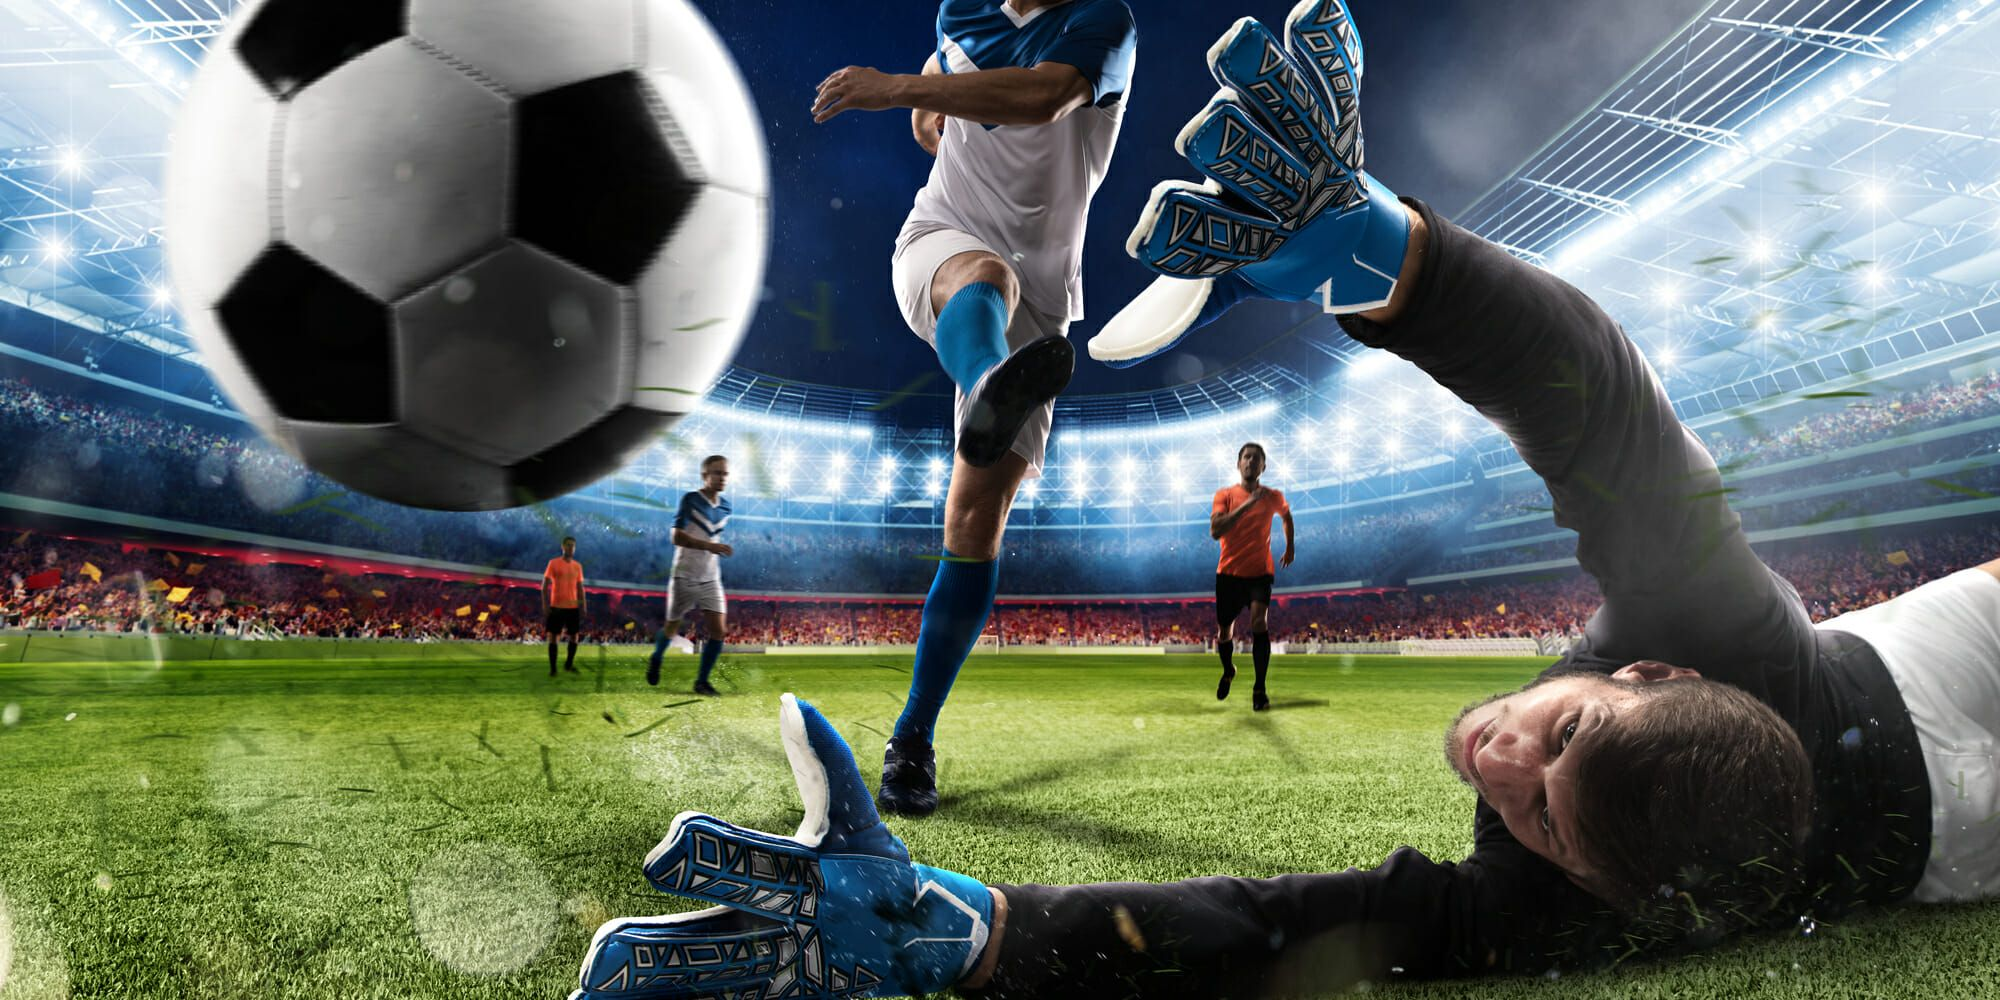 10 TIPS TO KNOW HOW TO VICTORY FOOTBALL BETTING – inreads